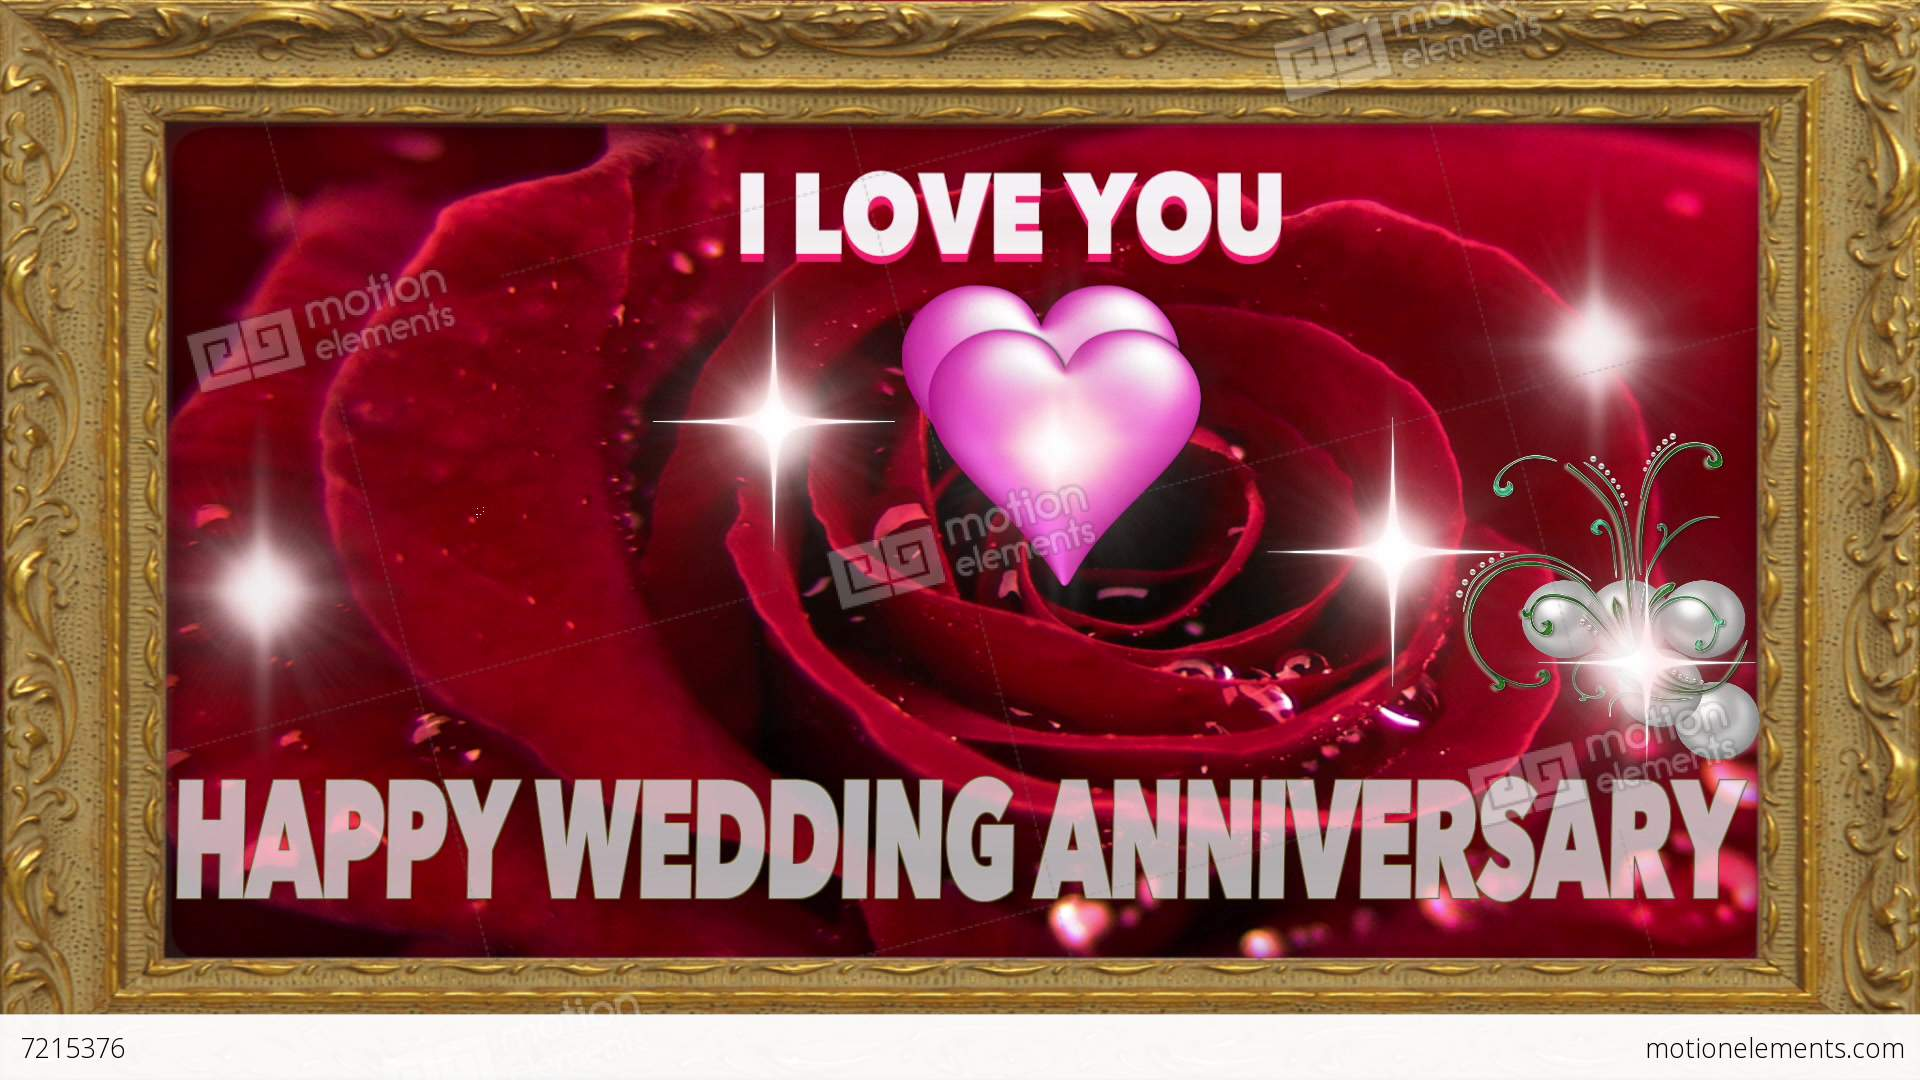 Cute first wedding anniversary photo ideas for your shoot